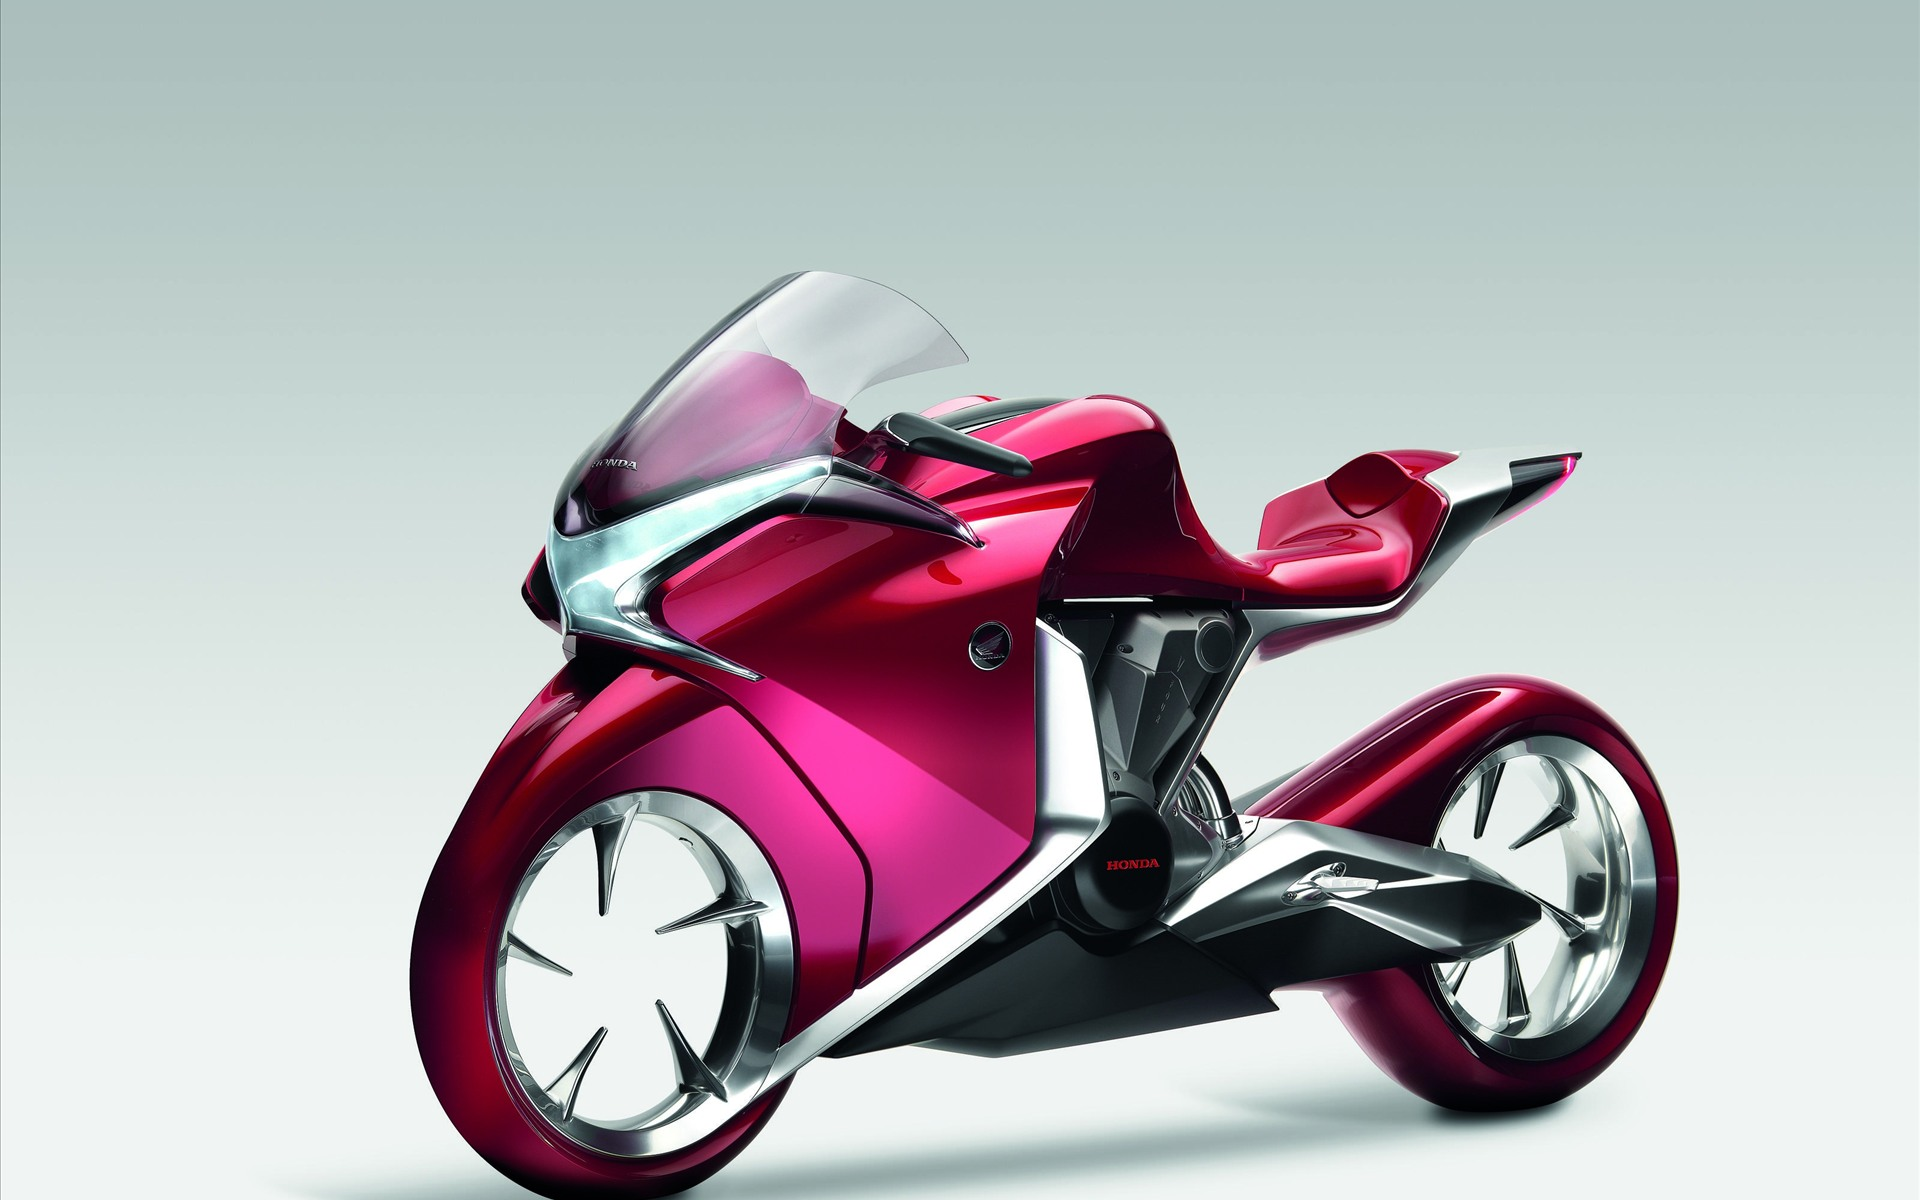 Honda V4 Concept Widescreen Bike 109.53 Kb